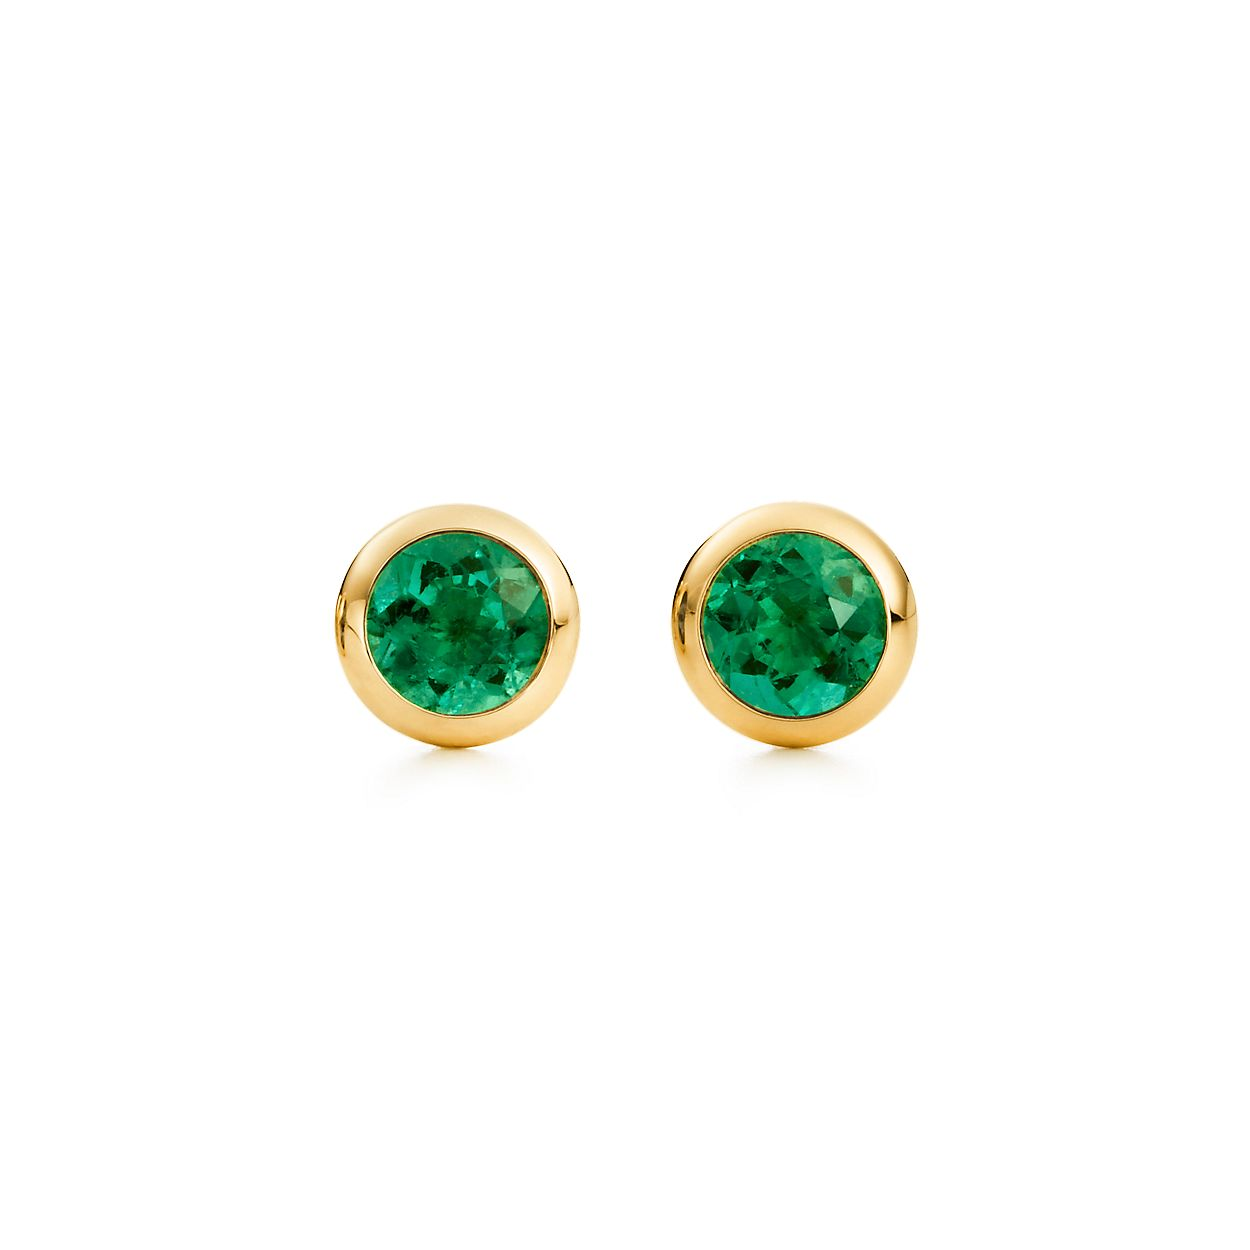 Elsa Peretti Color By The Yard Earrings